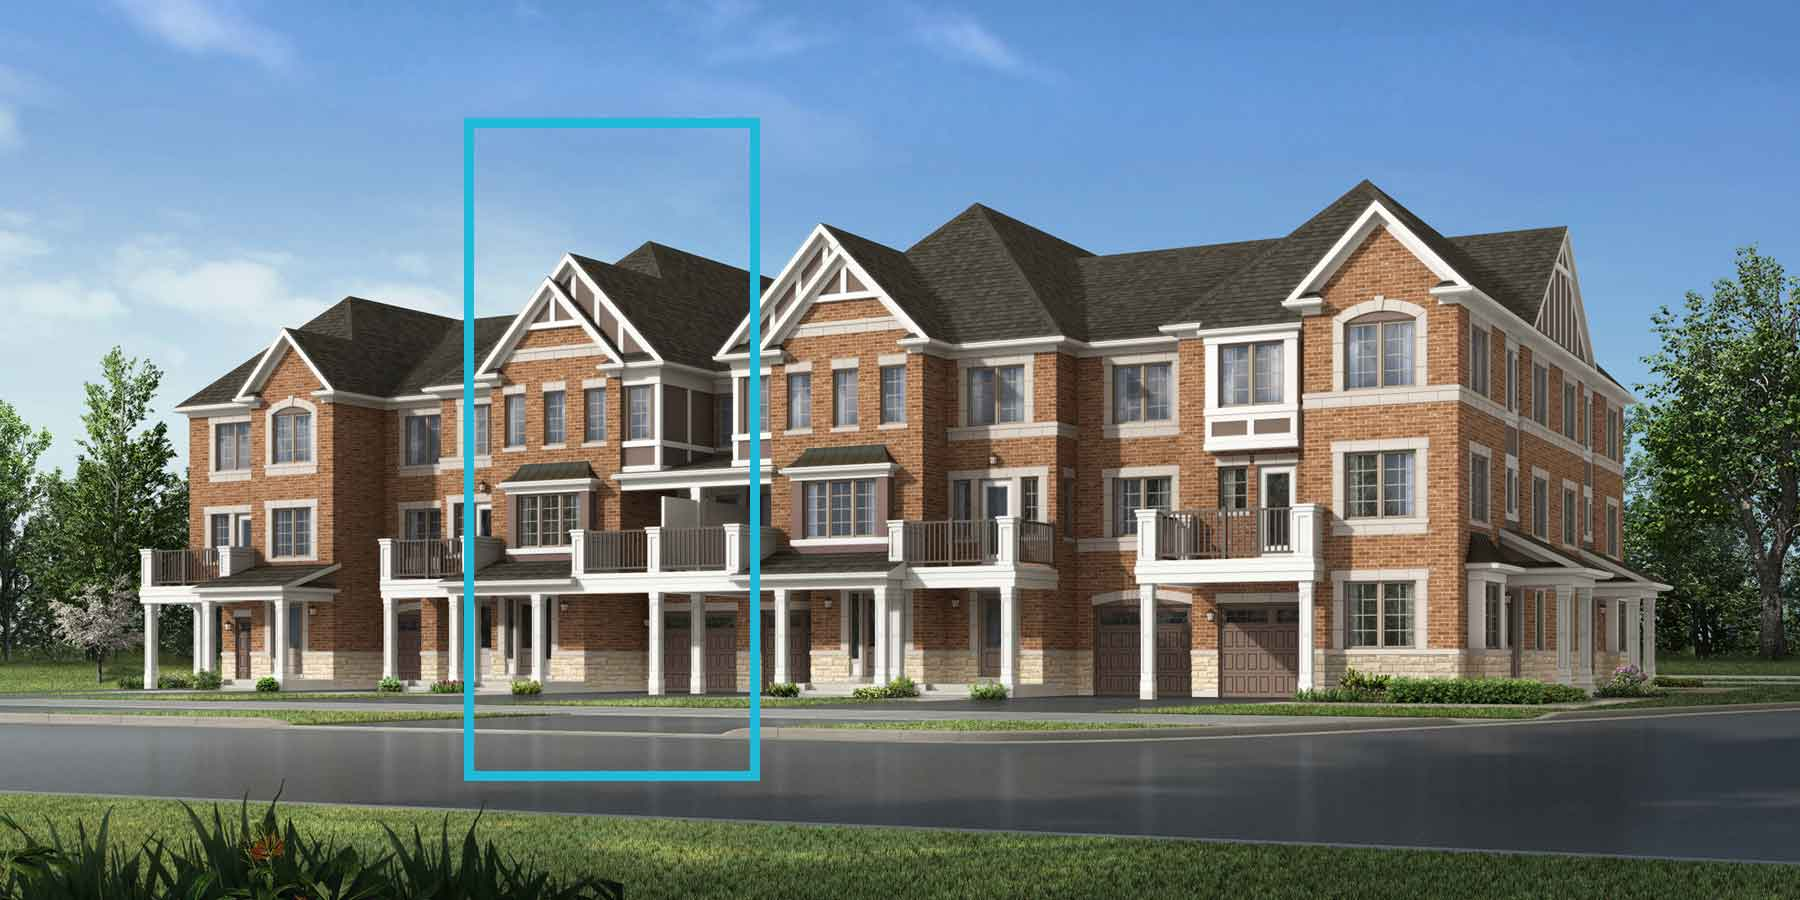 Elmer Plan TownHomes at Seaton Whitevale in Pickering Ontario by Mattamy Homes